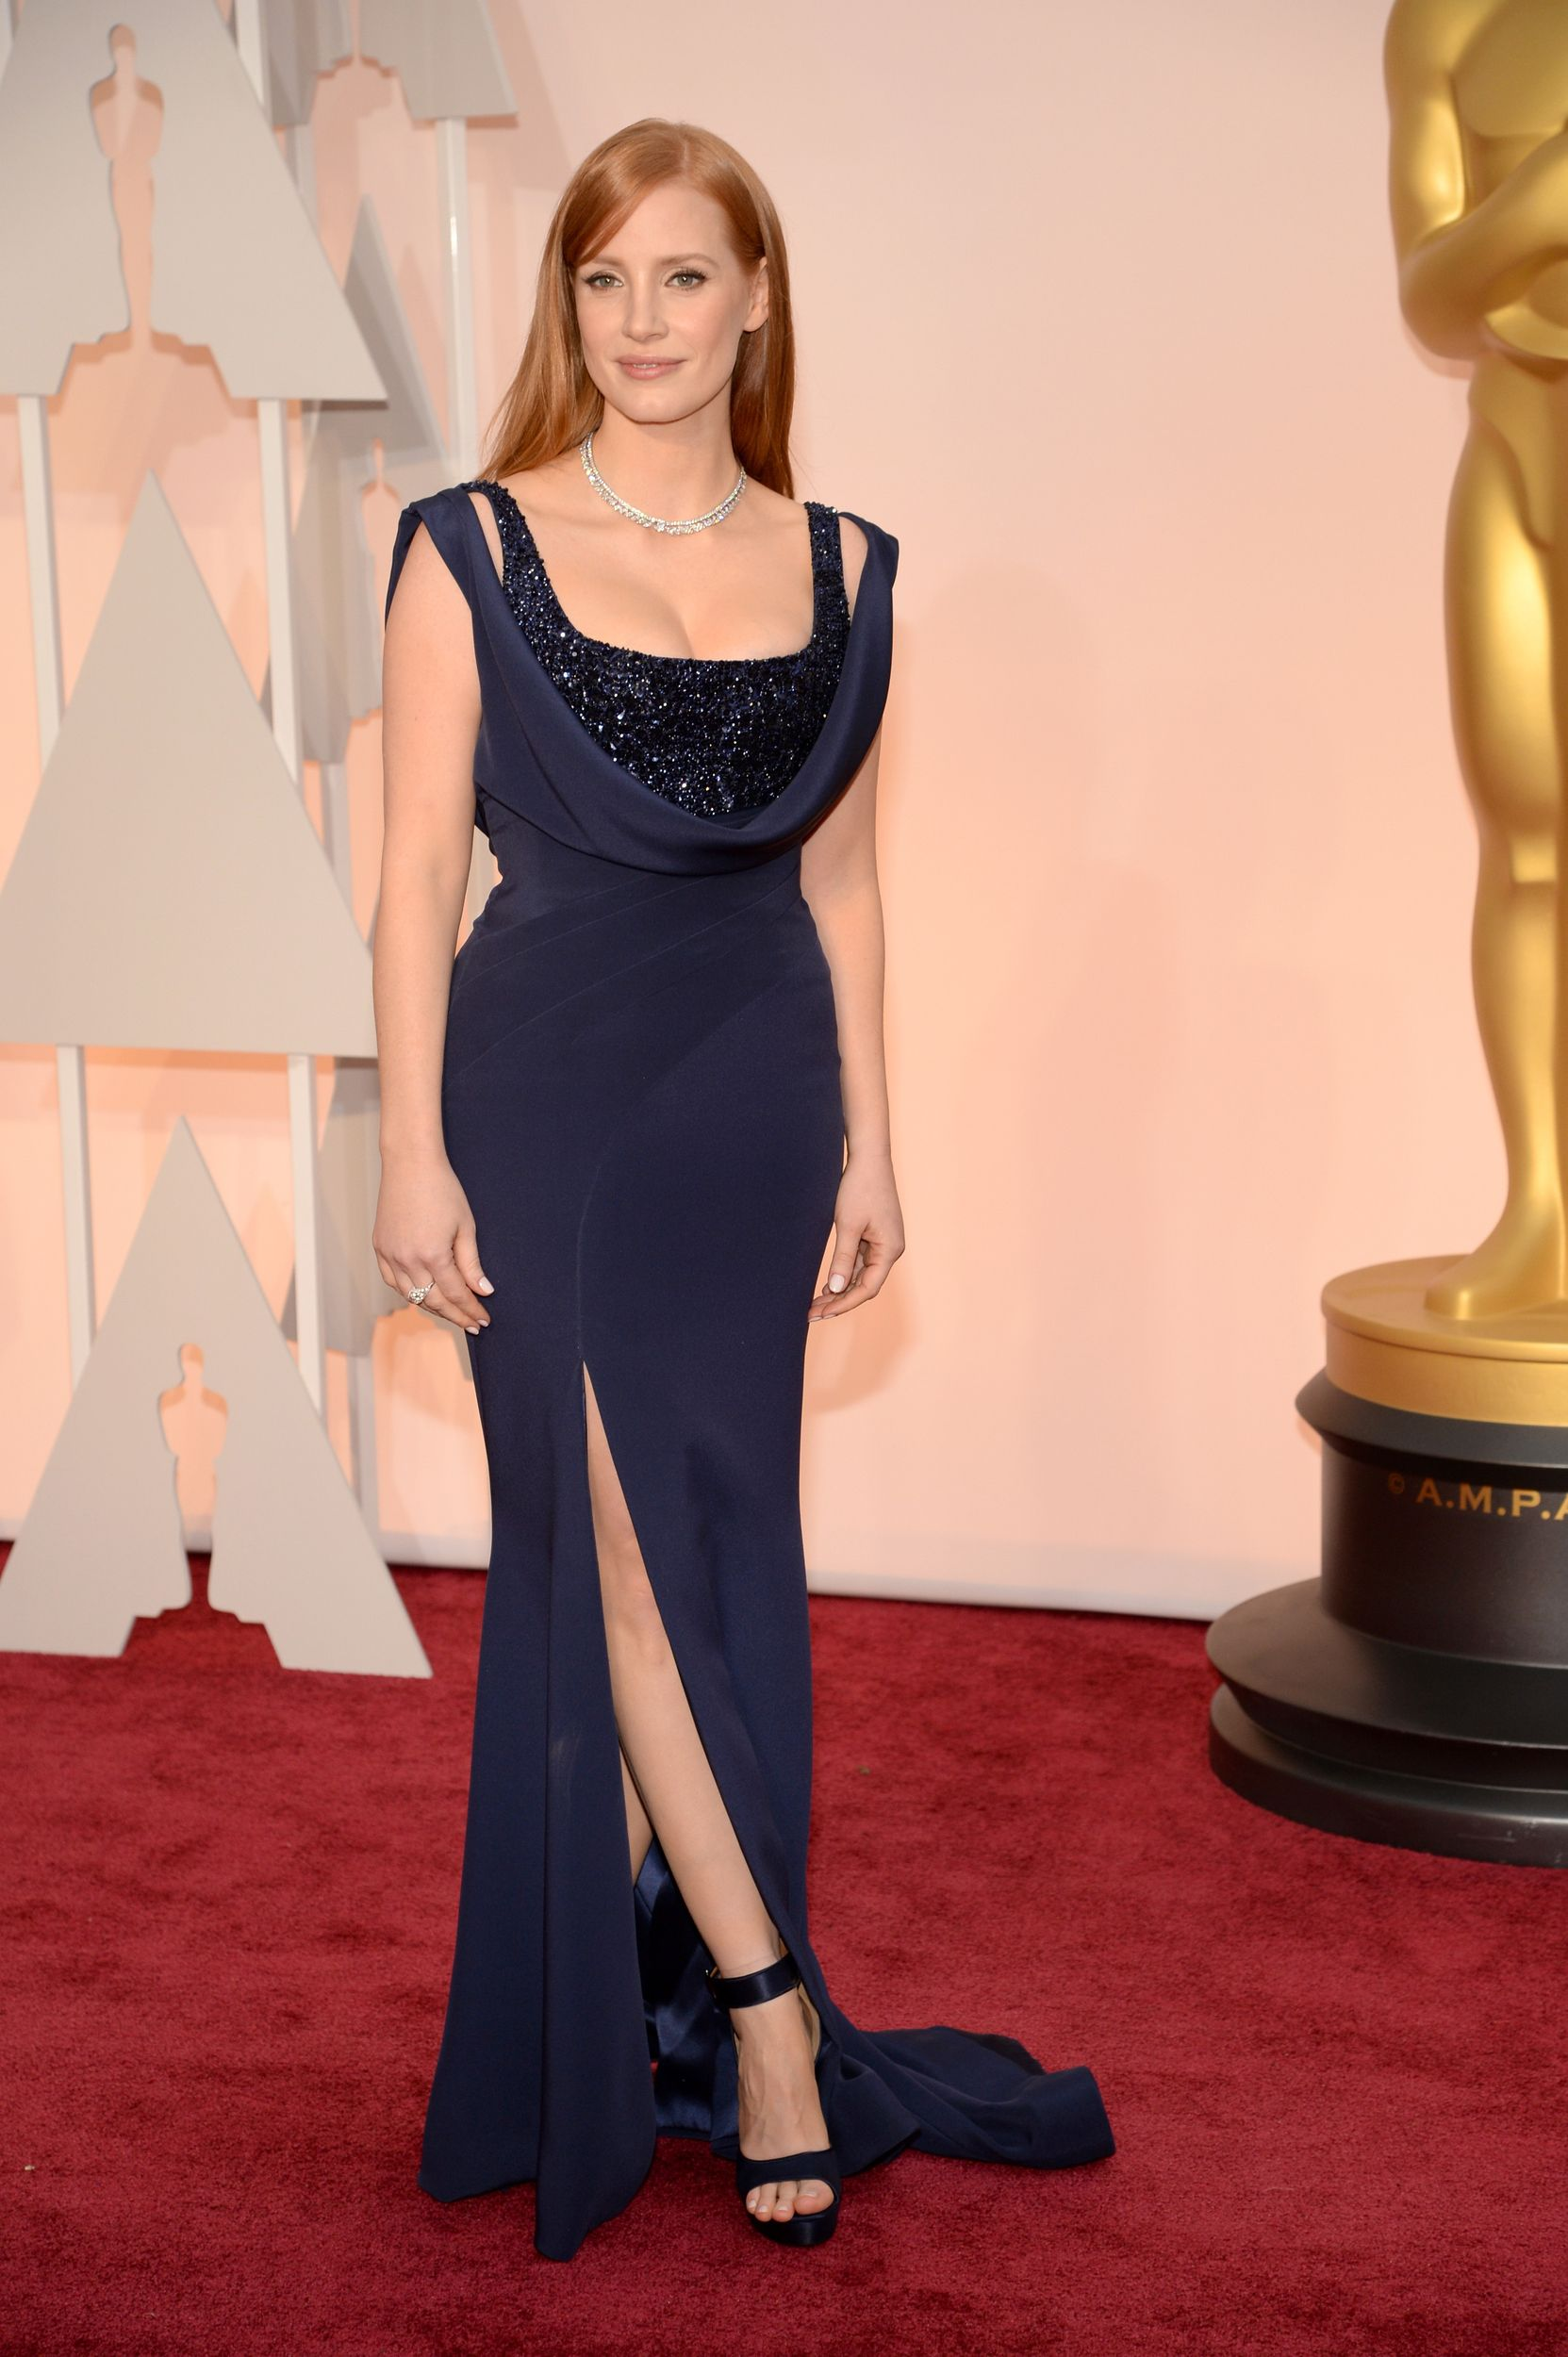 Oscars: 9 of the most memorable Academy Awards outfits